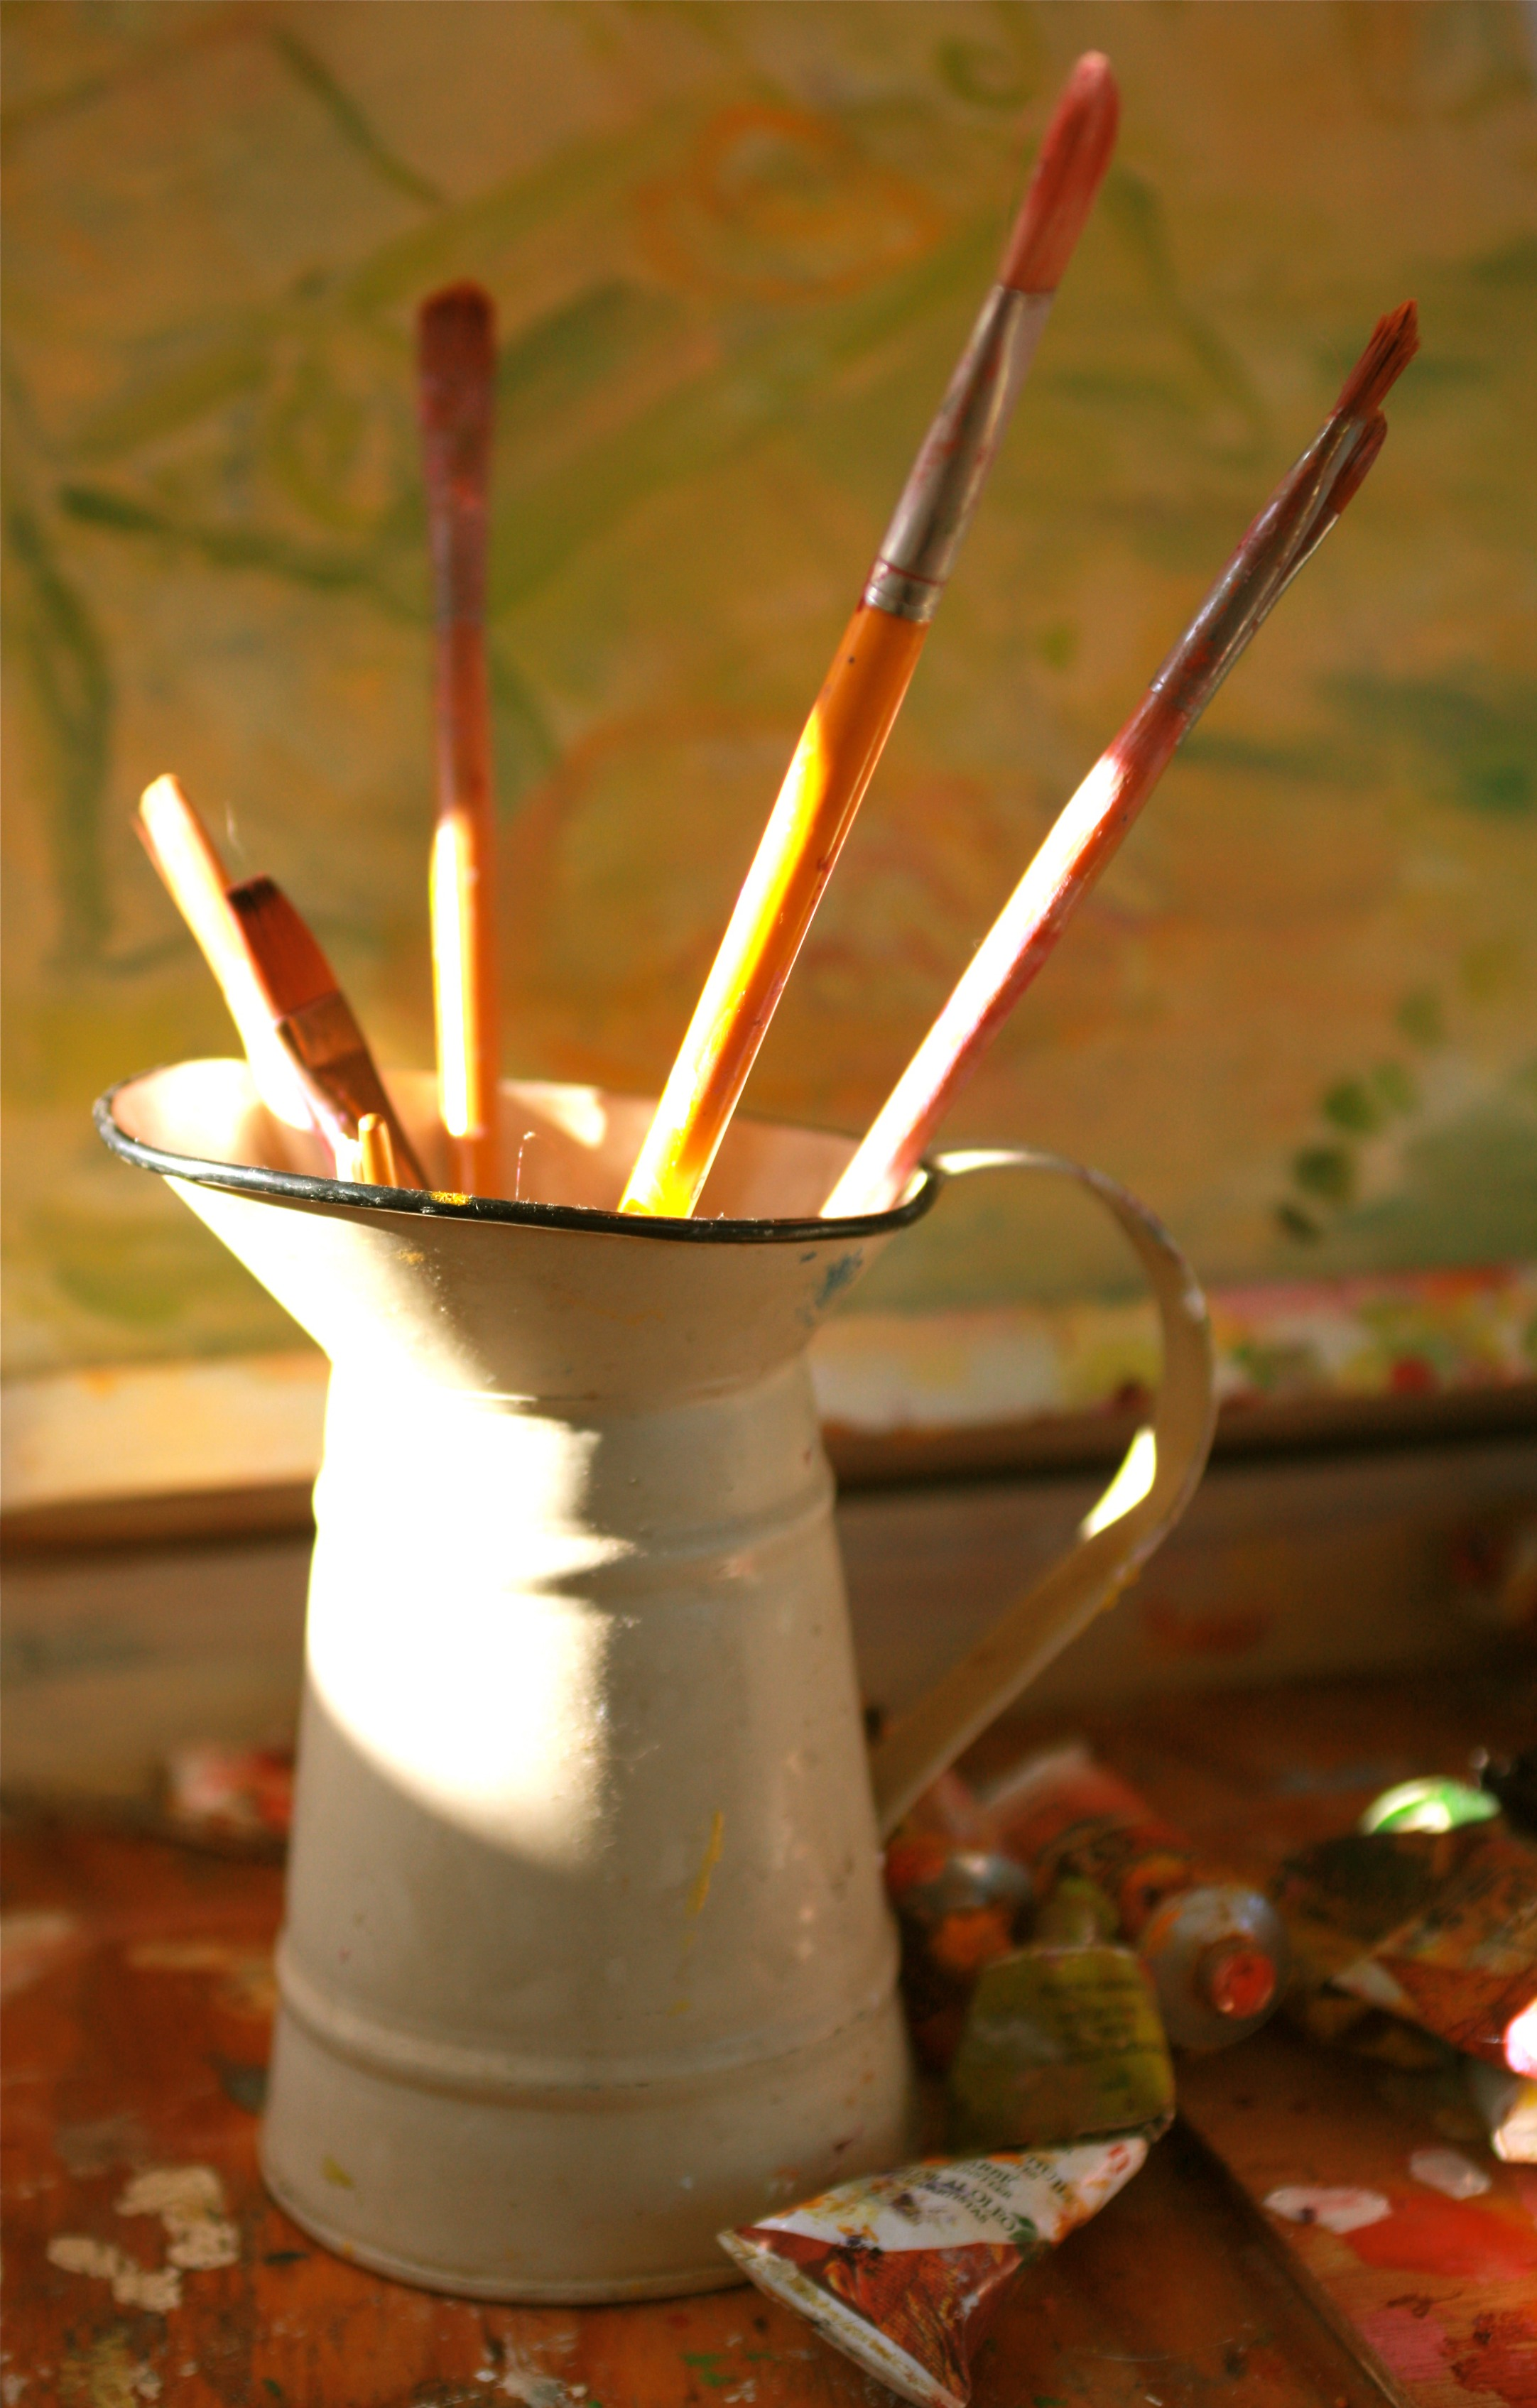 pic of my paint brushes.jpg